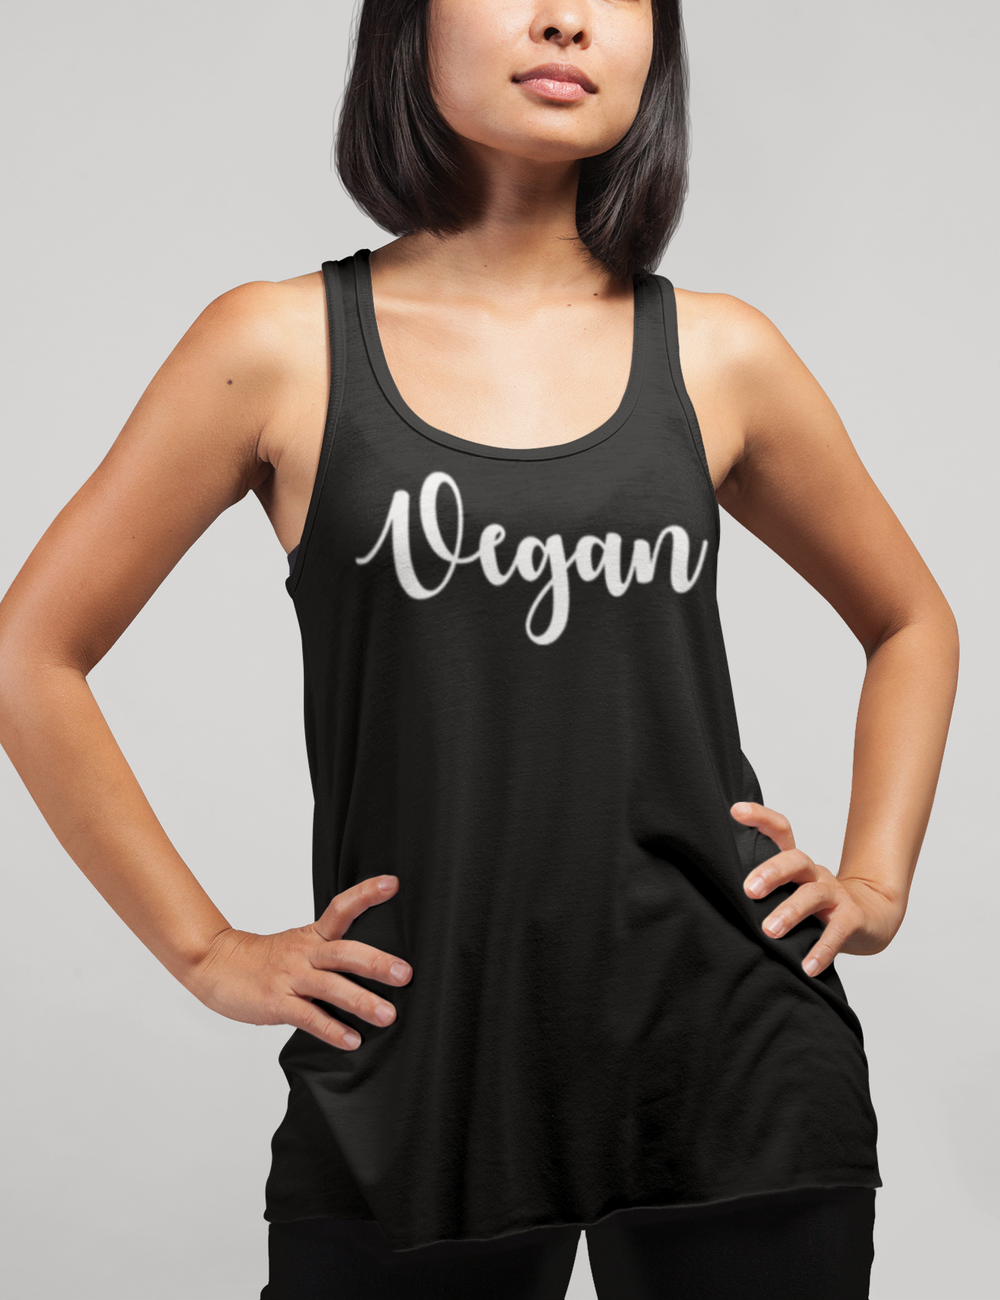 Vegan Women's Cut Racerback Tank Top